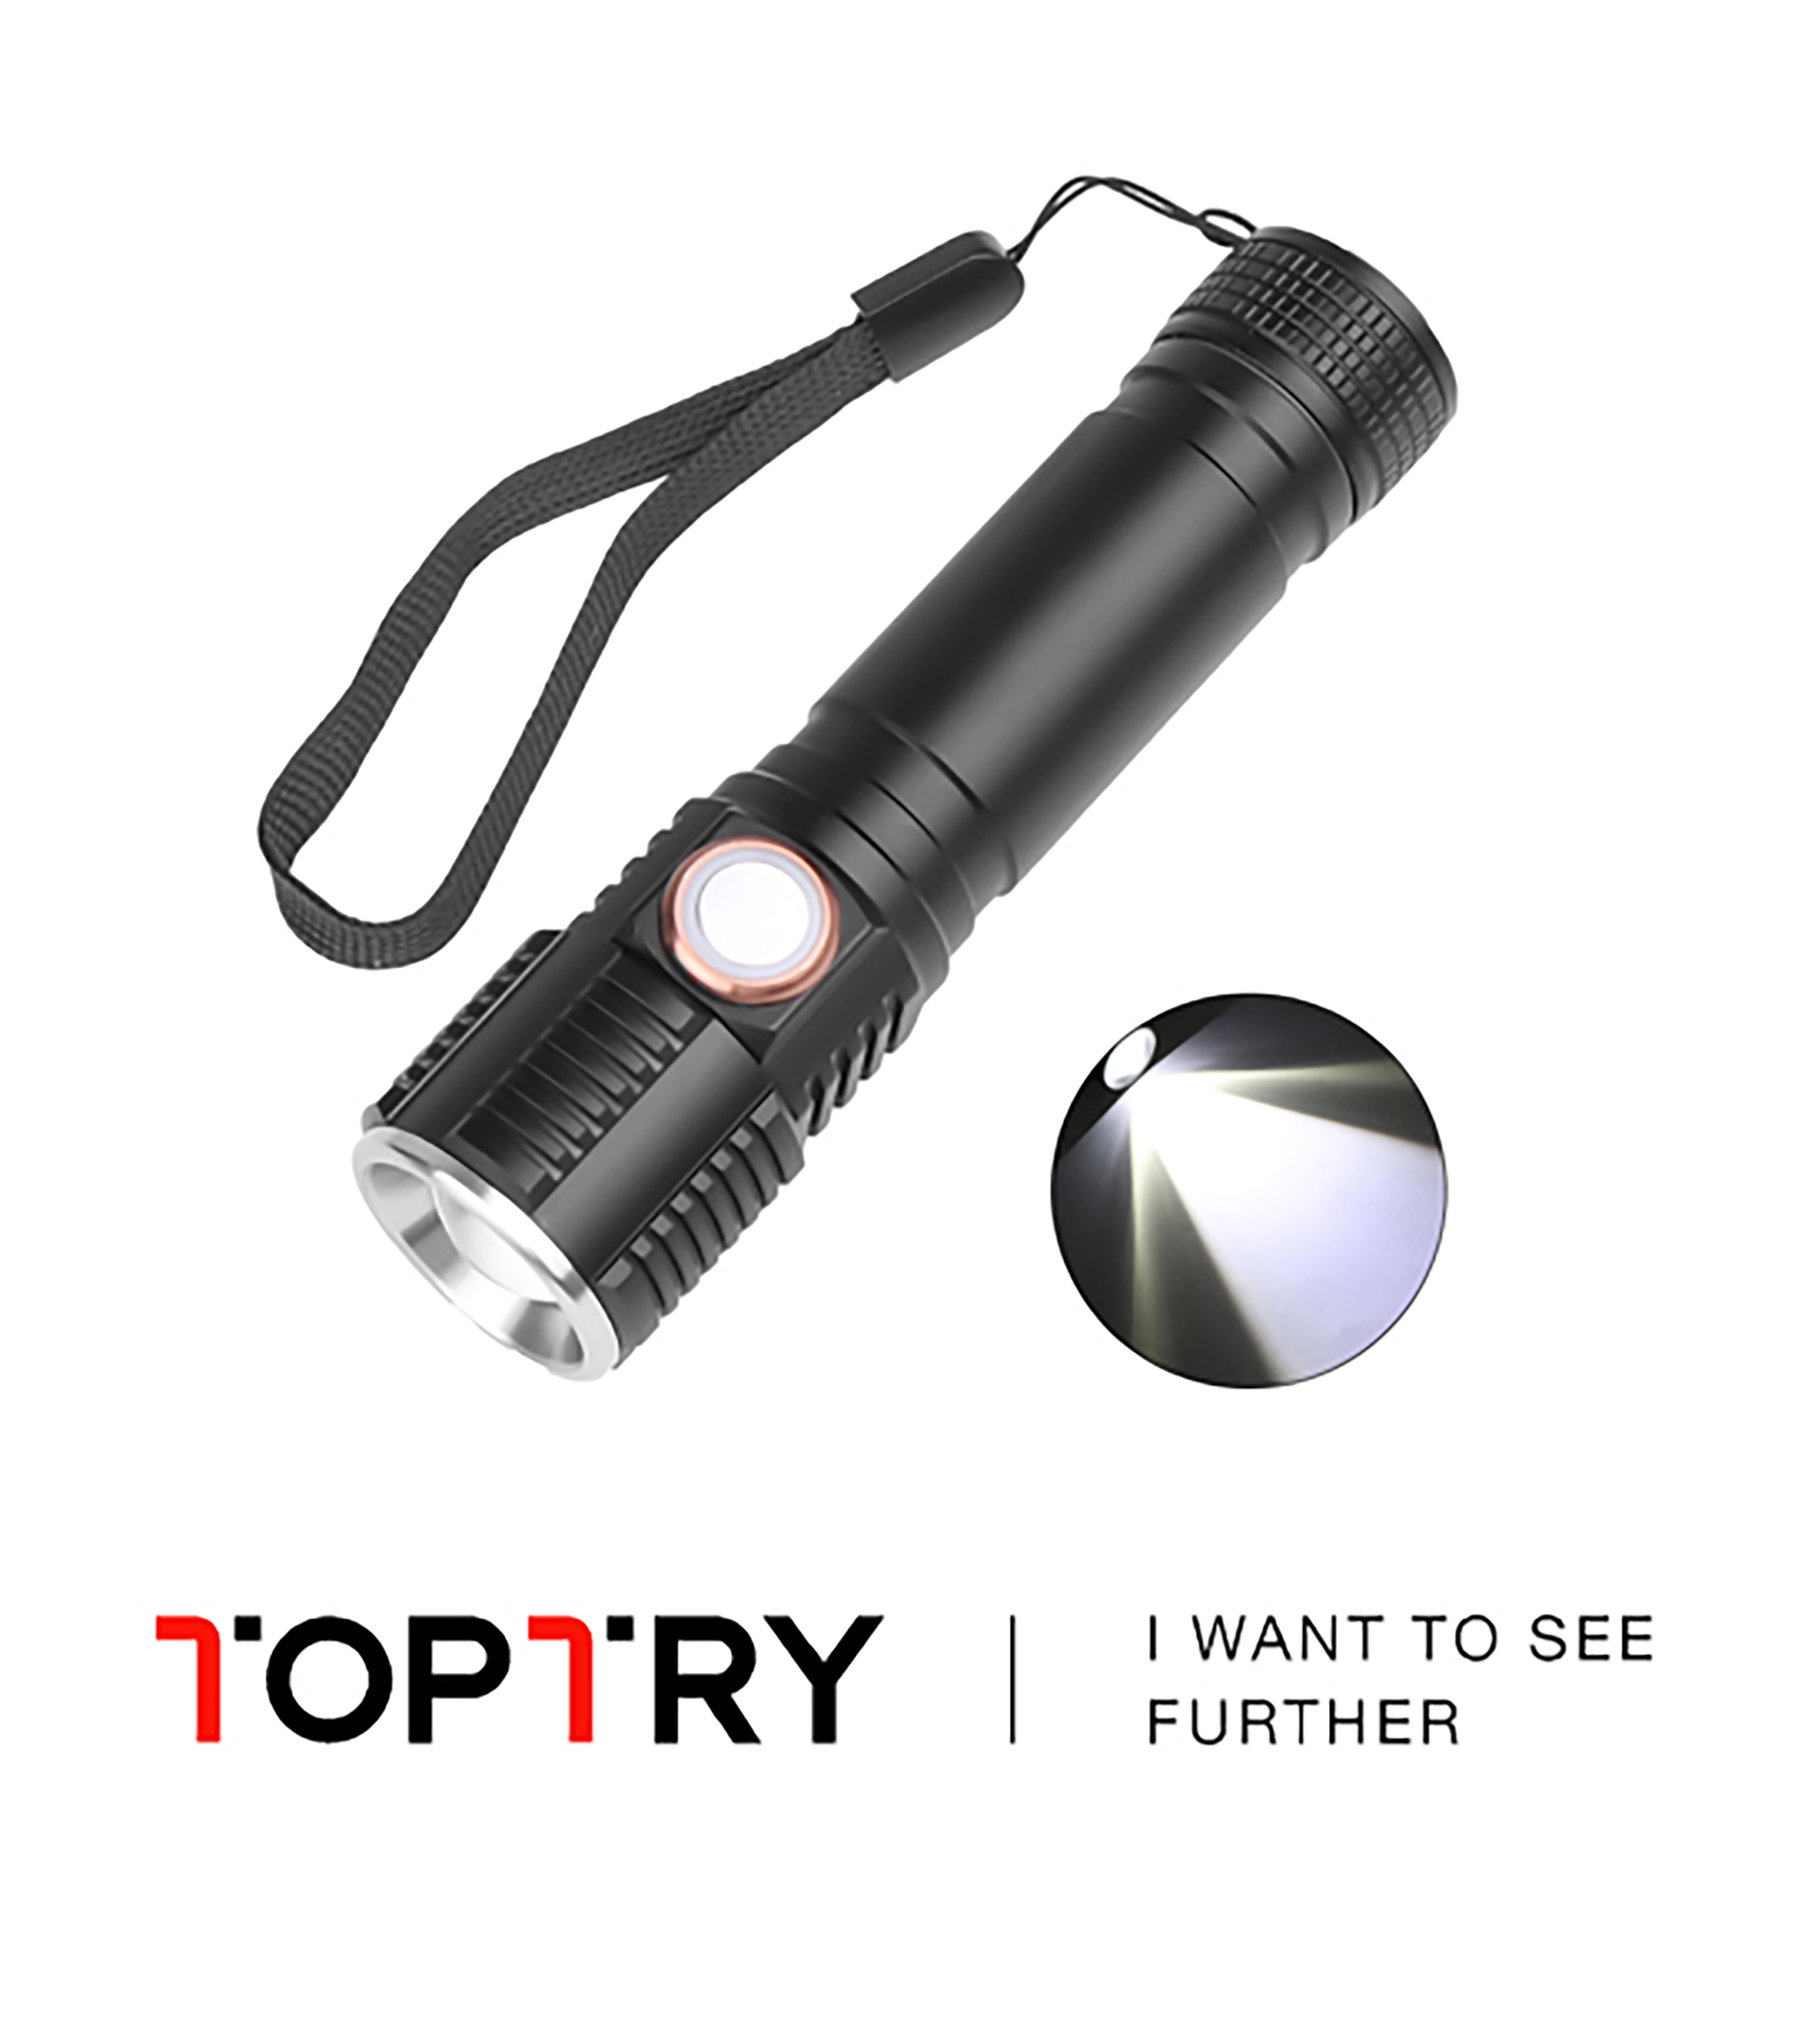 Led Flashlight Ultra Bright Torch T6 Camping Light 3 Switch Modes Waterproof Zoomable Bicycle Light Use 18650 Battery